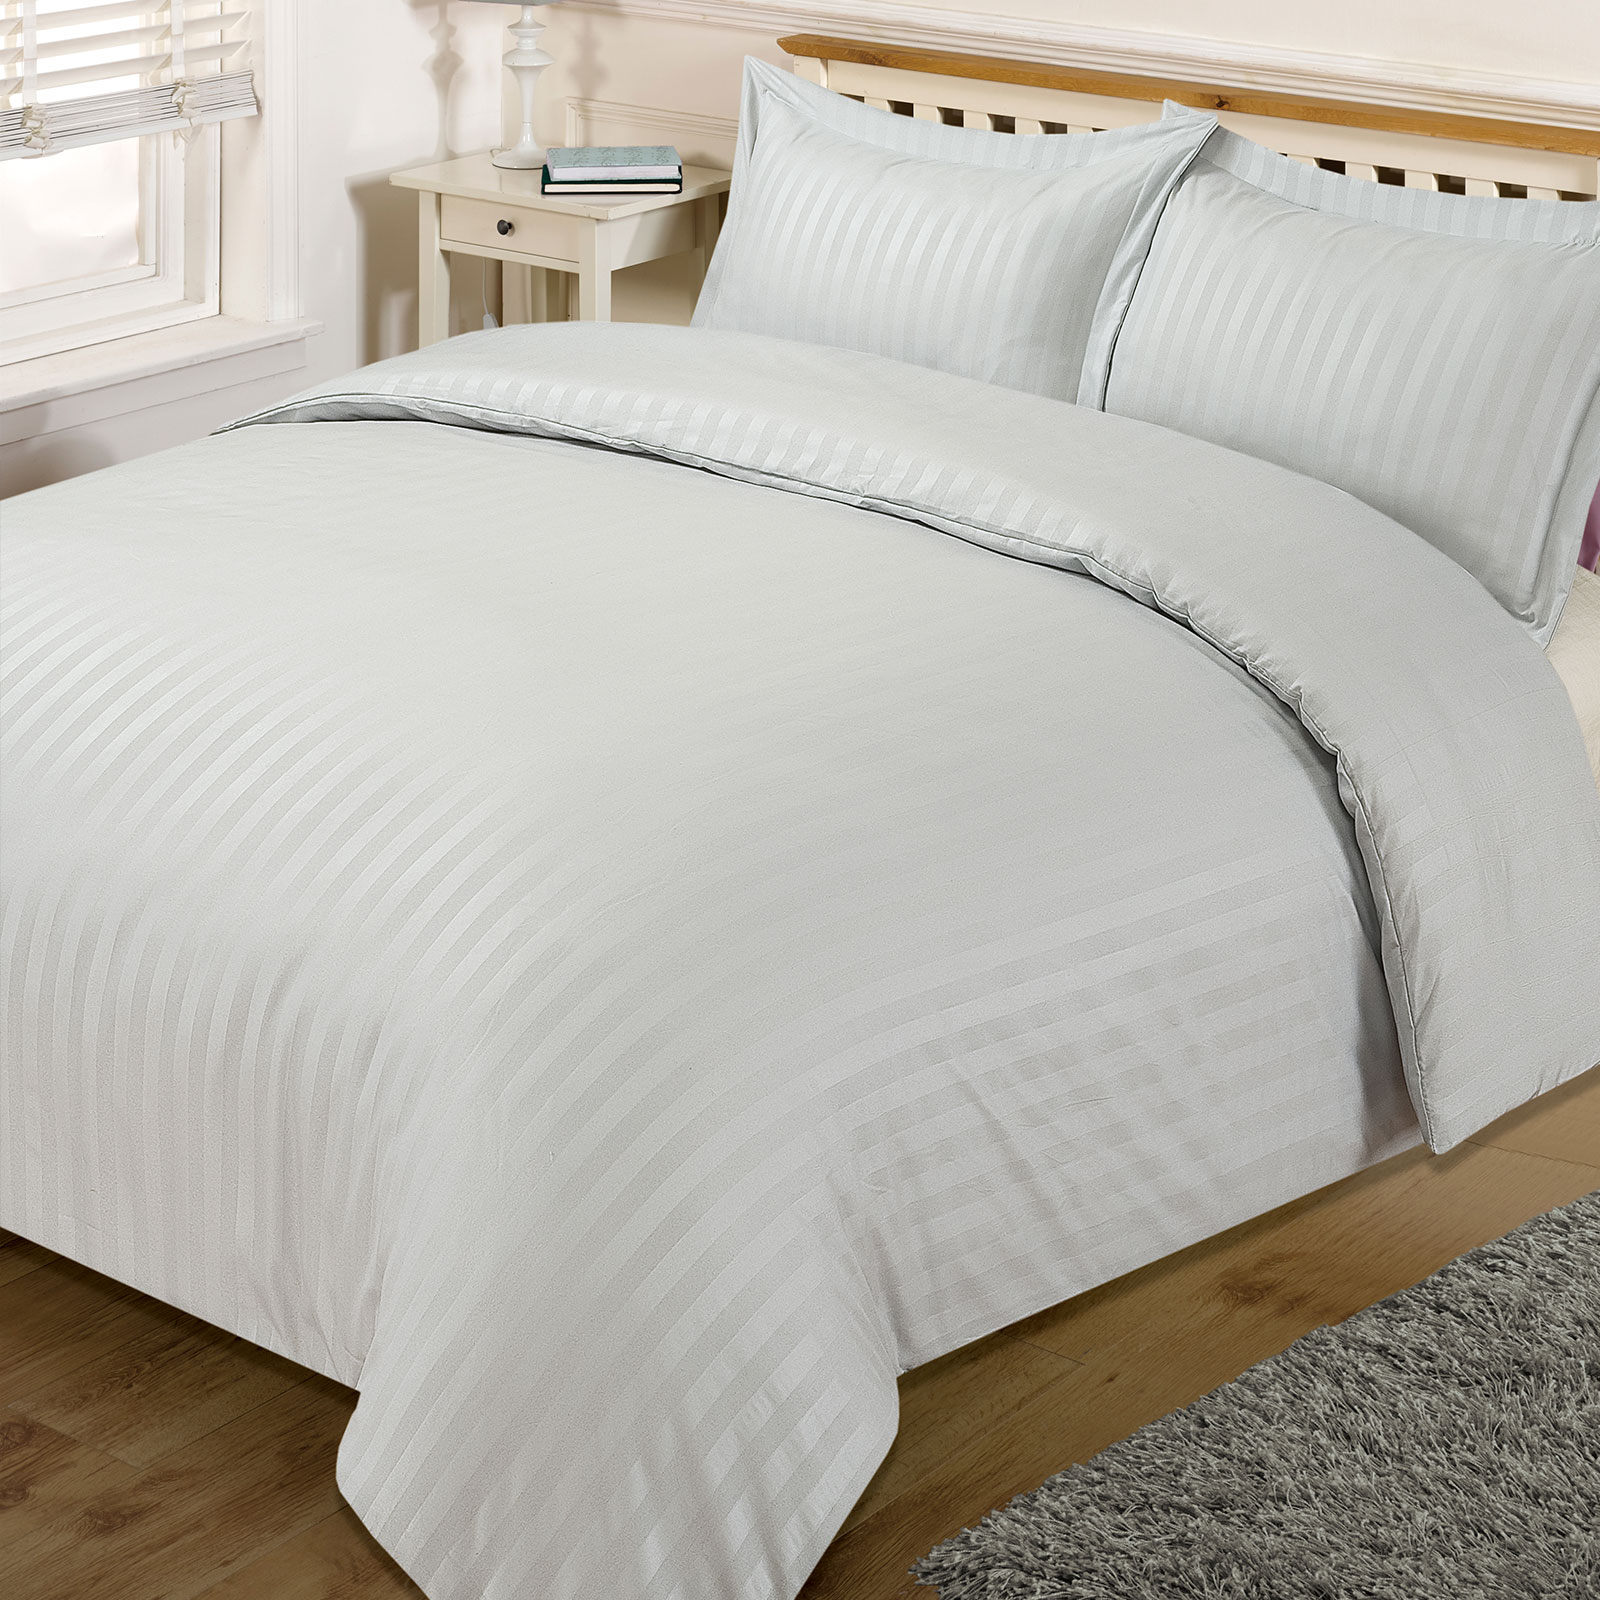 Shop Ethan Allen's Duvet Covers and Duvet Cover Sets including Twin, Full, Queen, King, California King, Euro, and Standard. Ethan Allen Save up to 25% Plus even bigger savings on select styles.